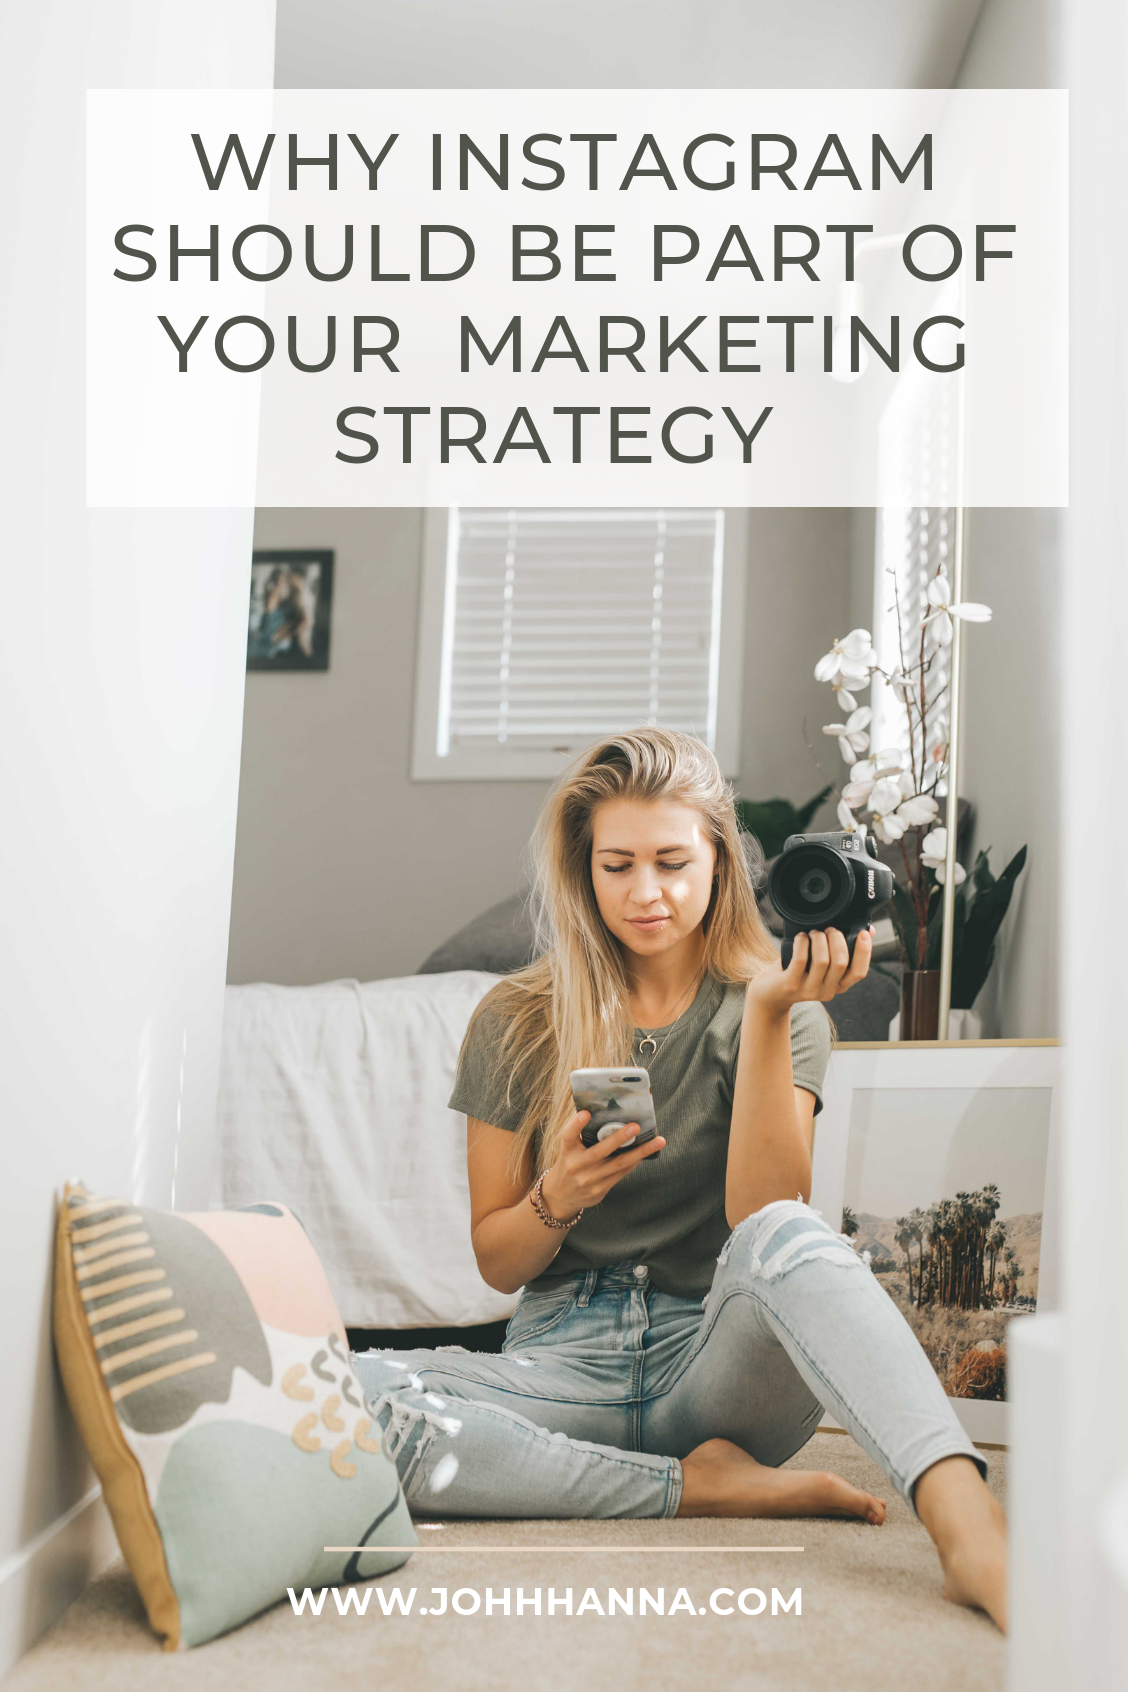 why-instagram-should-be-part-of-your-marketing-strategy.png .png